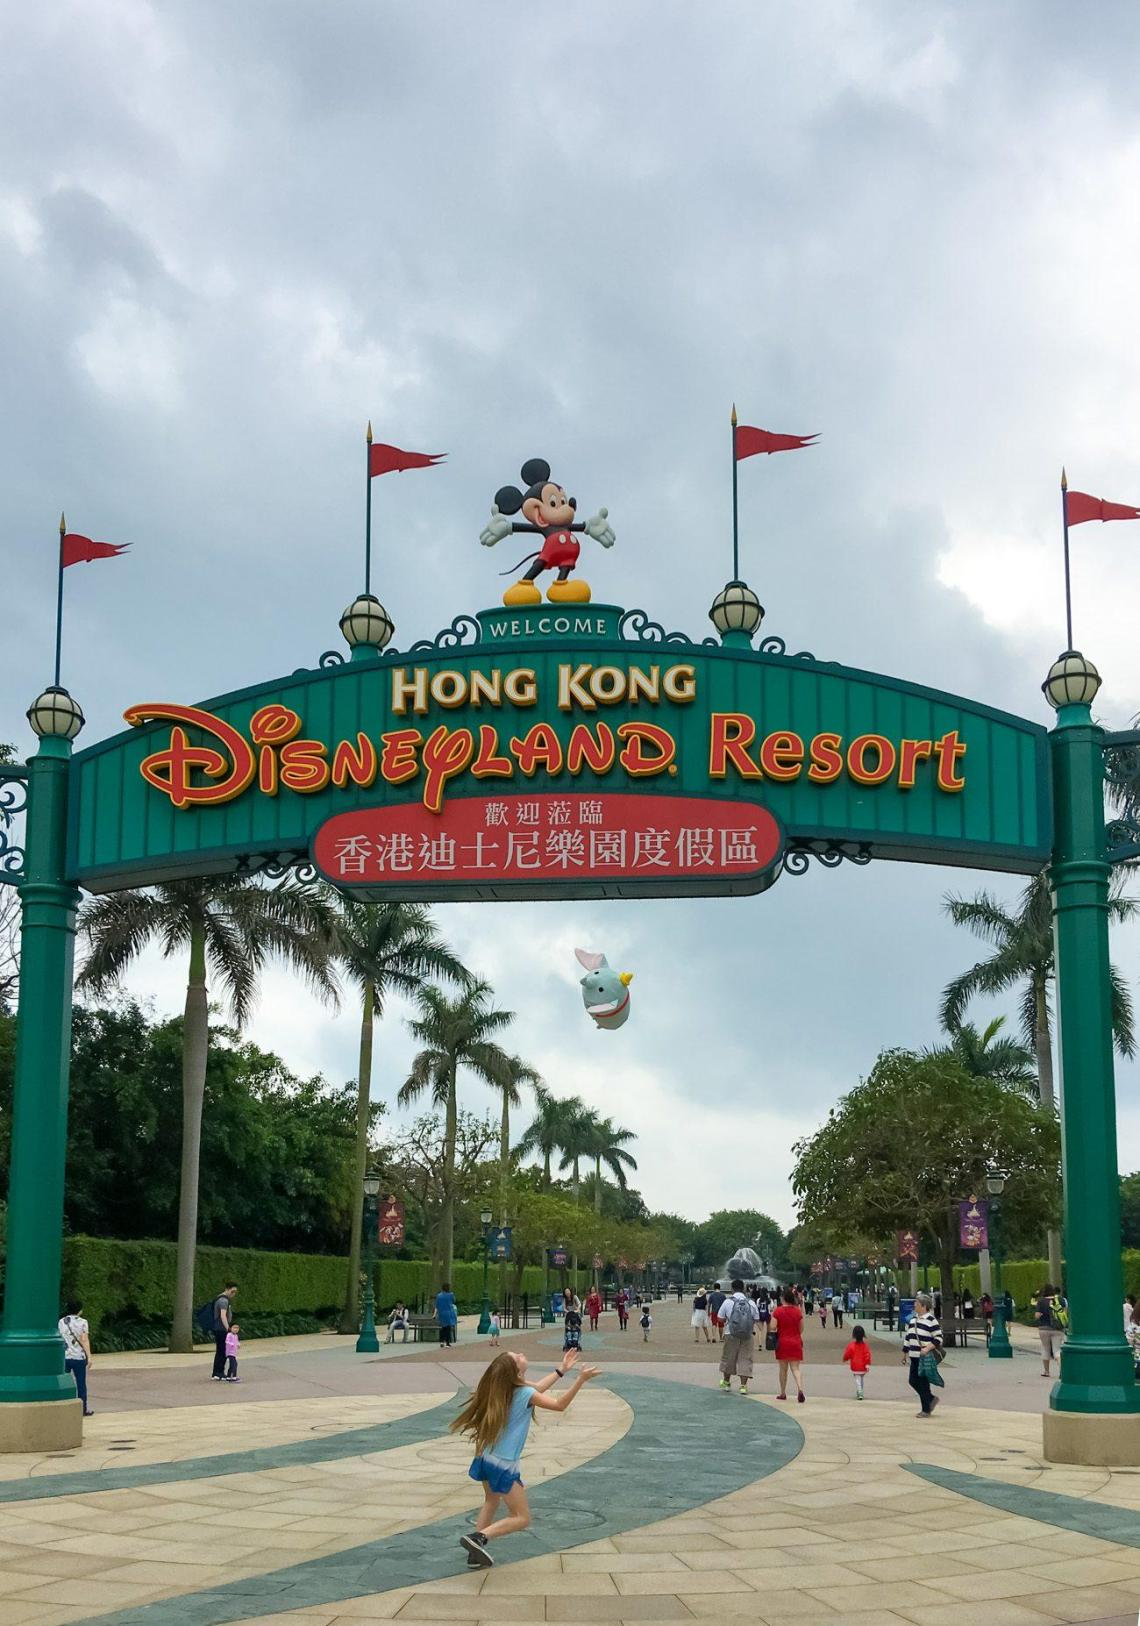 The standard Hong Kong Disneyland ticket price is pretty reasonable when compared to the price (about $) per day at Disney World in Orlando, Florida. The park offers different tickets at different price points, but often, you can also find better deals and discounts .